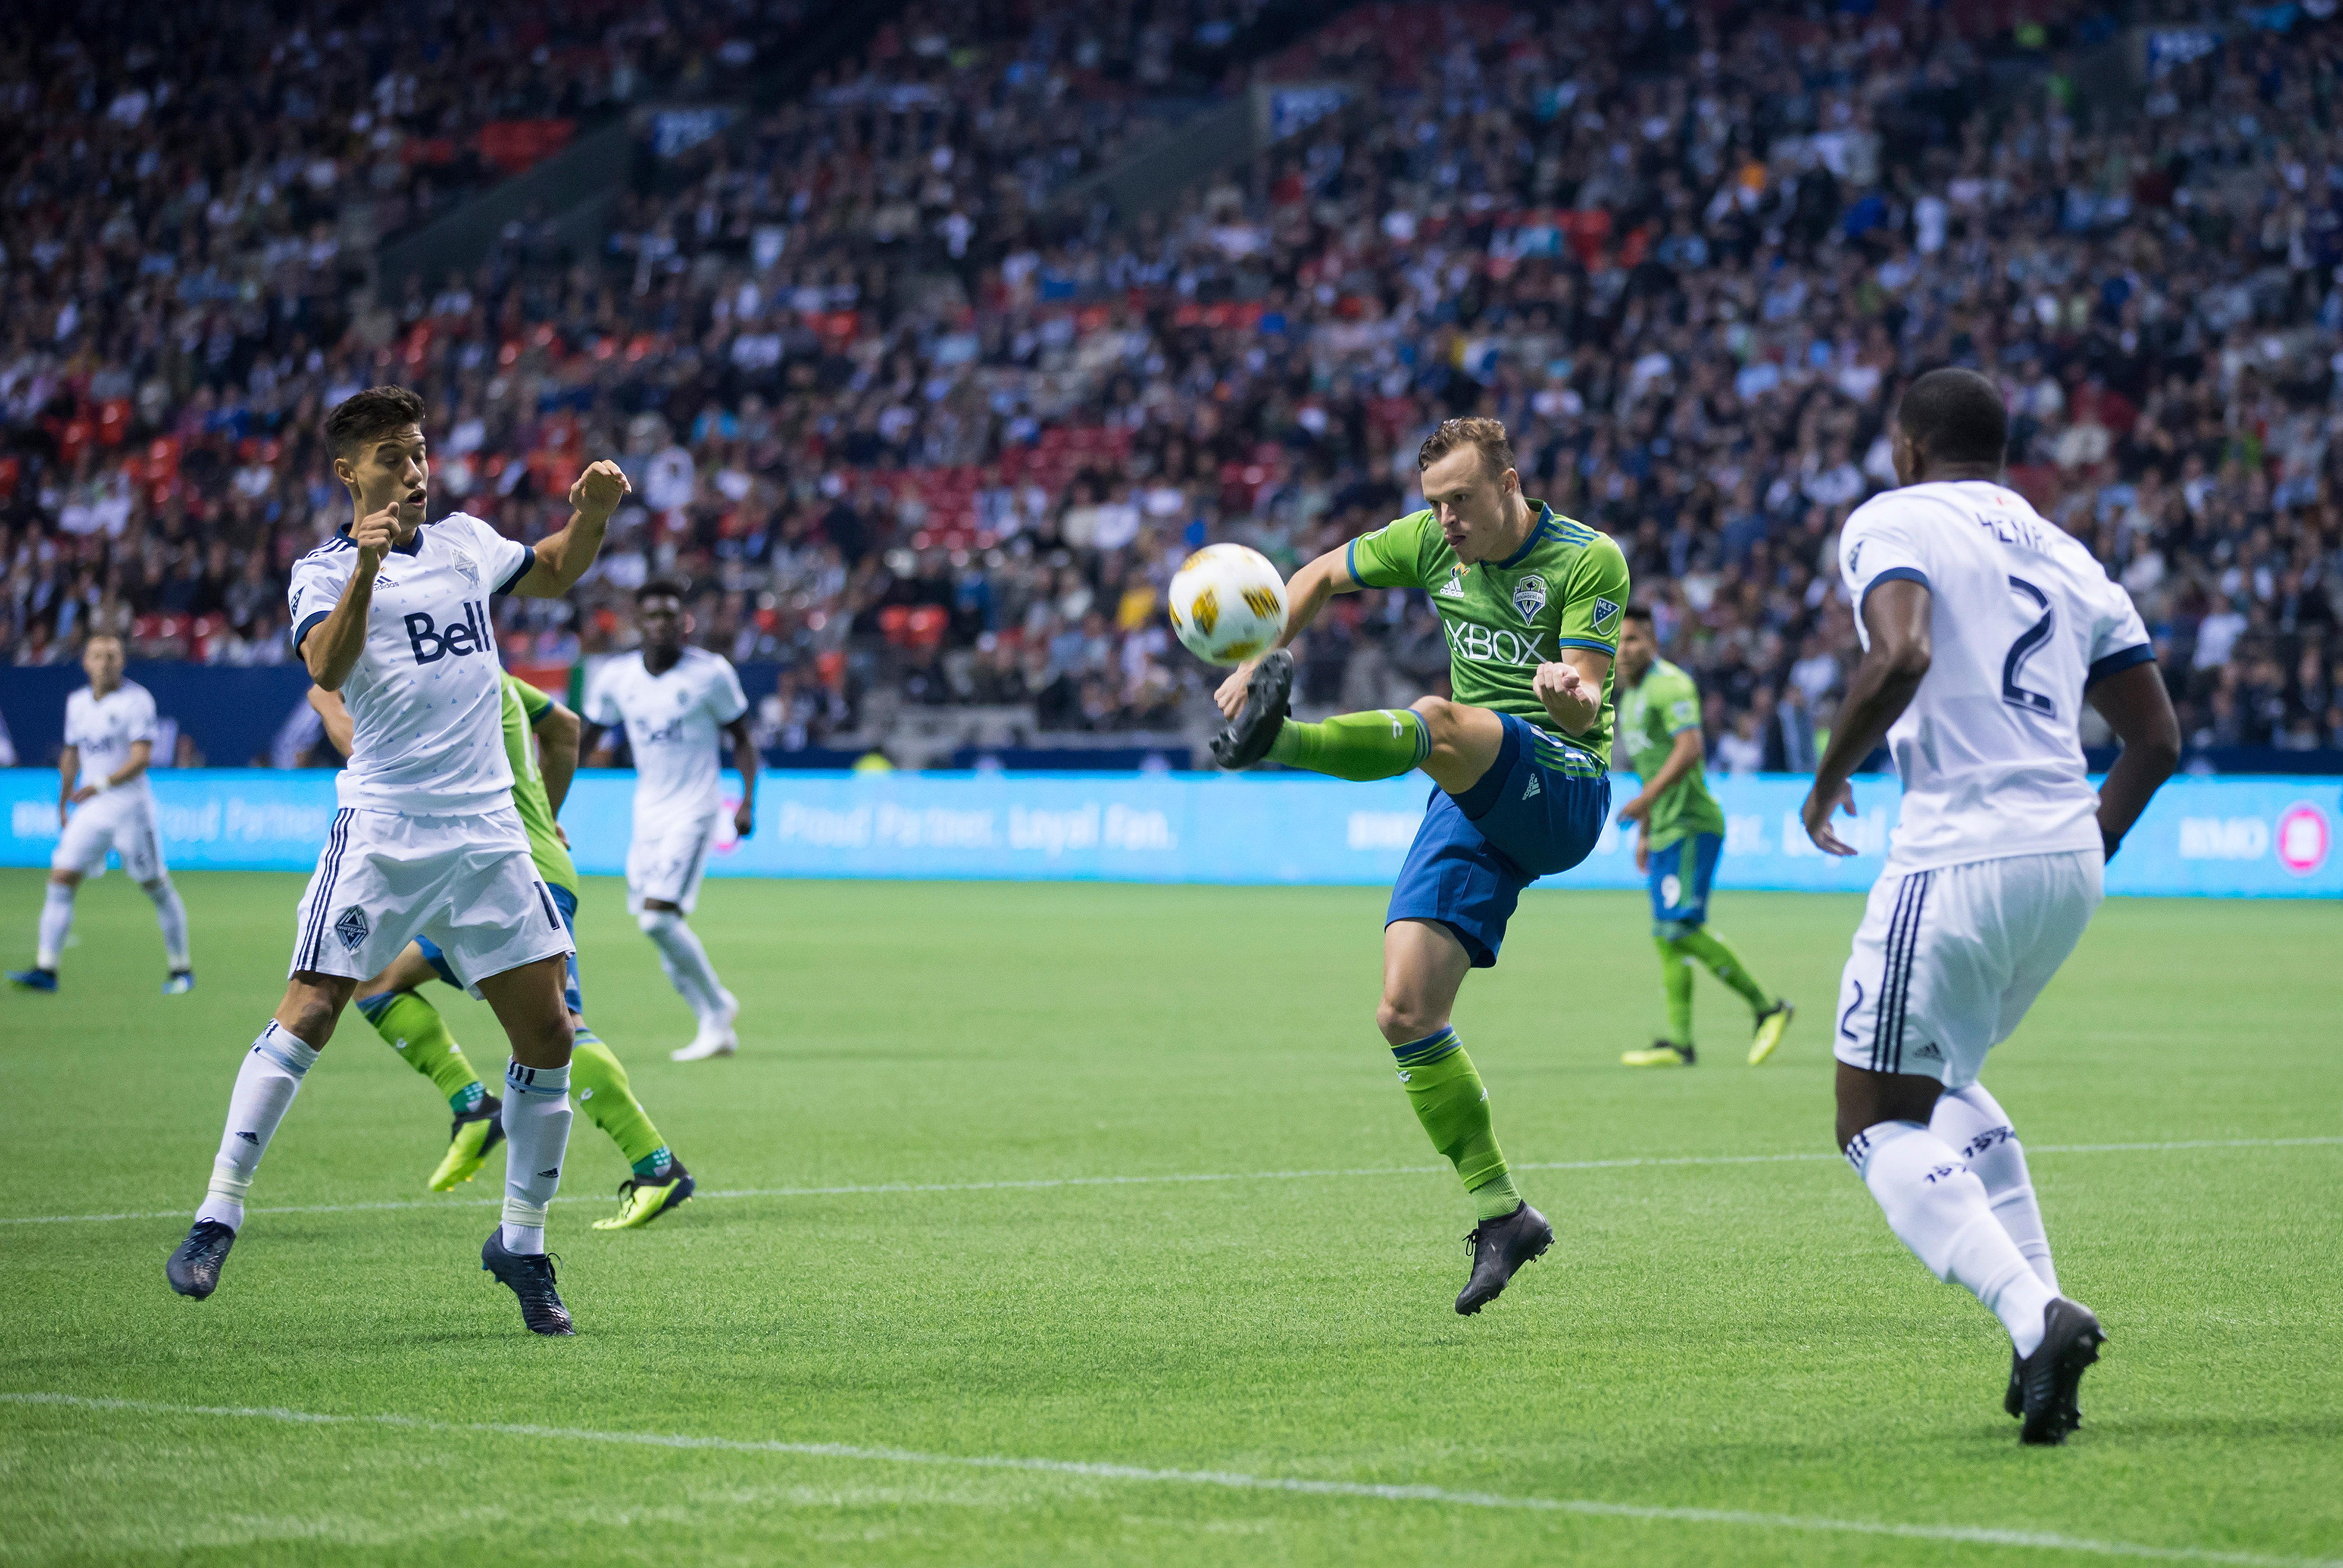 Seattle Sounders' Brad Smith, second from right, kicks the ball away from Vancouver Whitecaps' Nicolas Mezquida, left, and Doneil Henry, right, during the first half of an MLS soccer match, Saturday, Sept. 15, 2018, in Vancouver, British Columbia. (Darryl Dyck/The Canadian Press via AP)